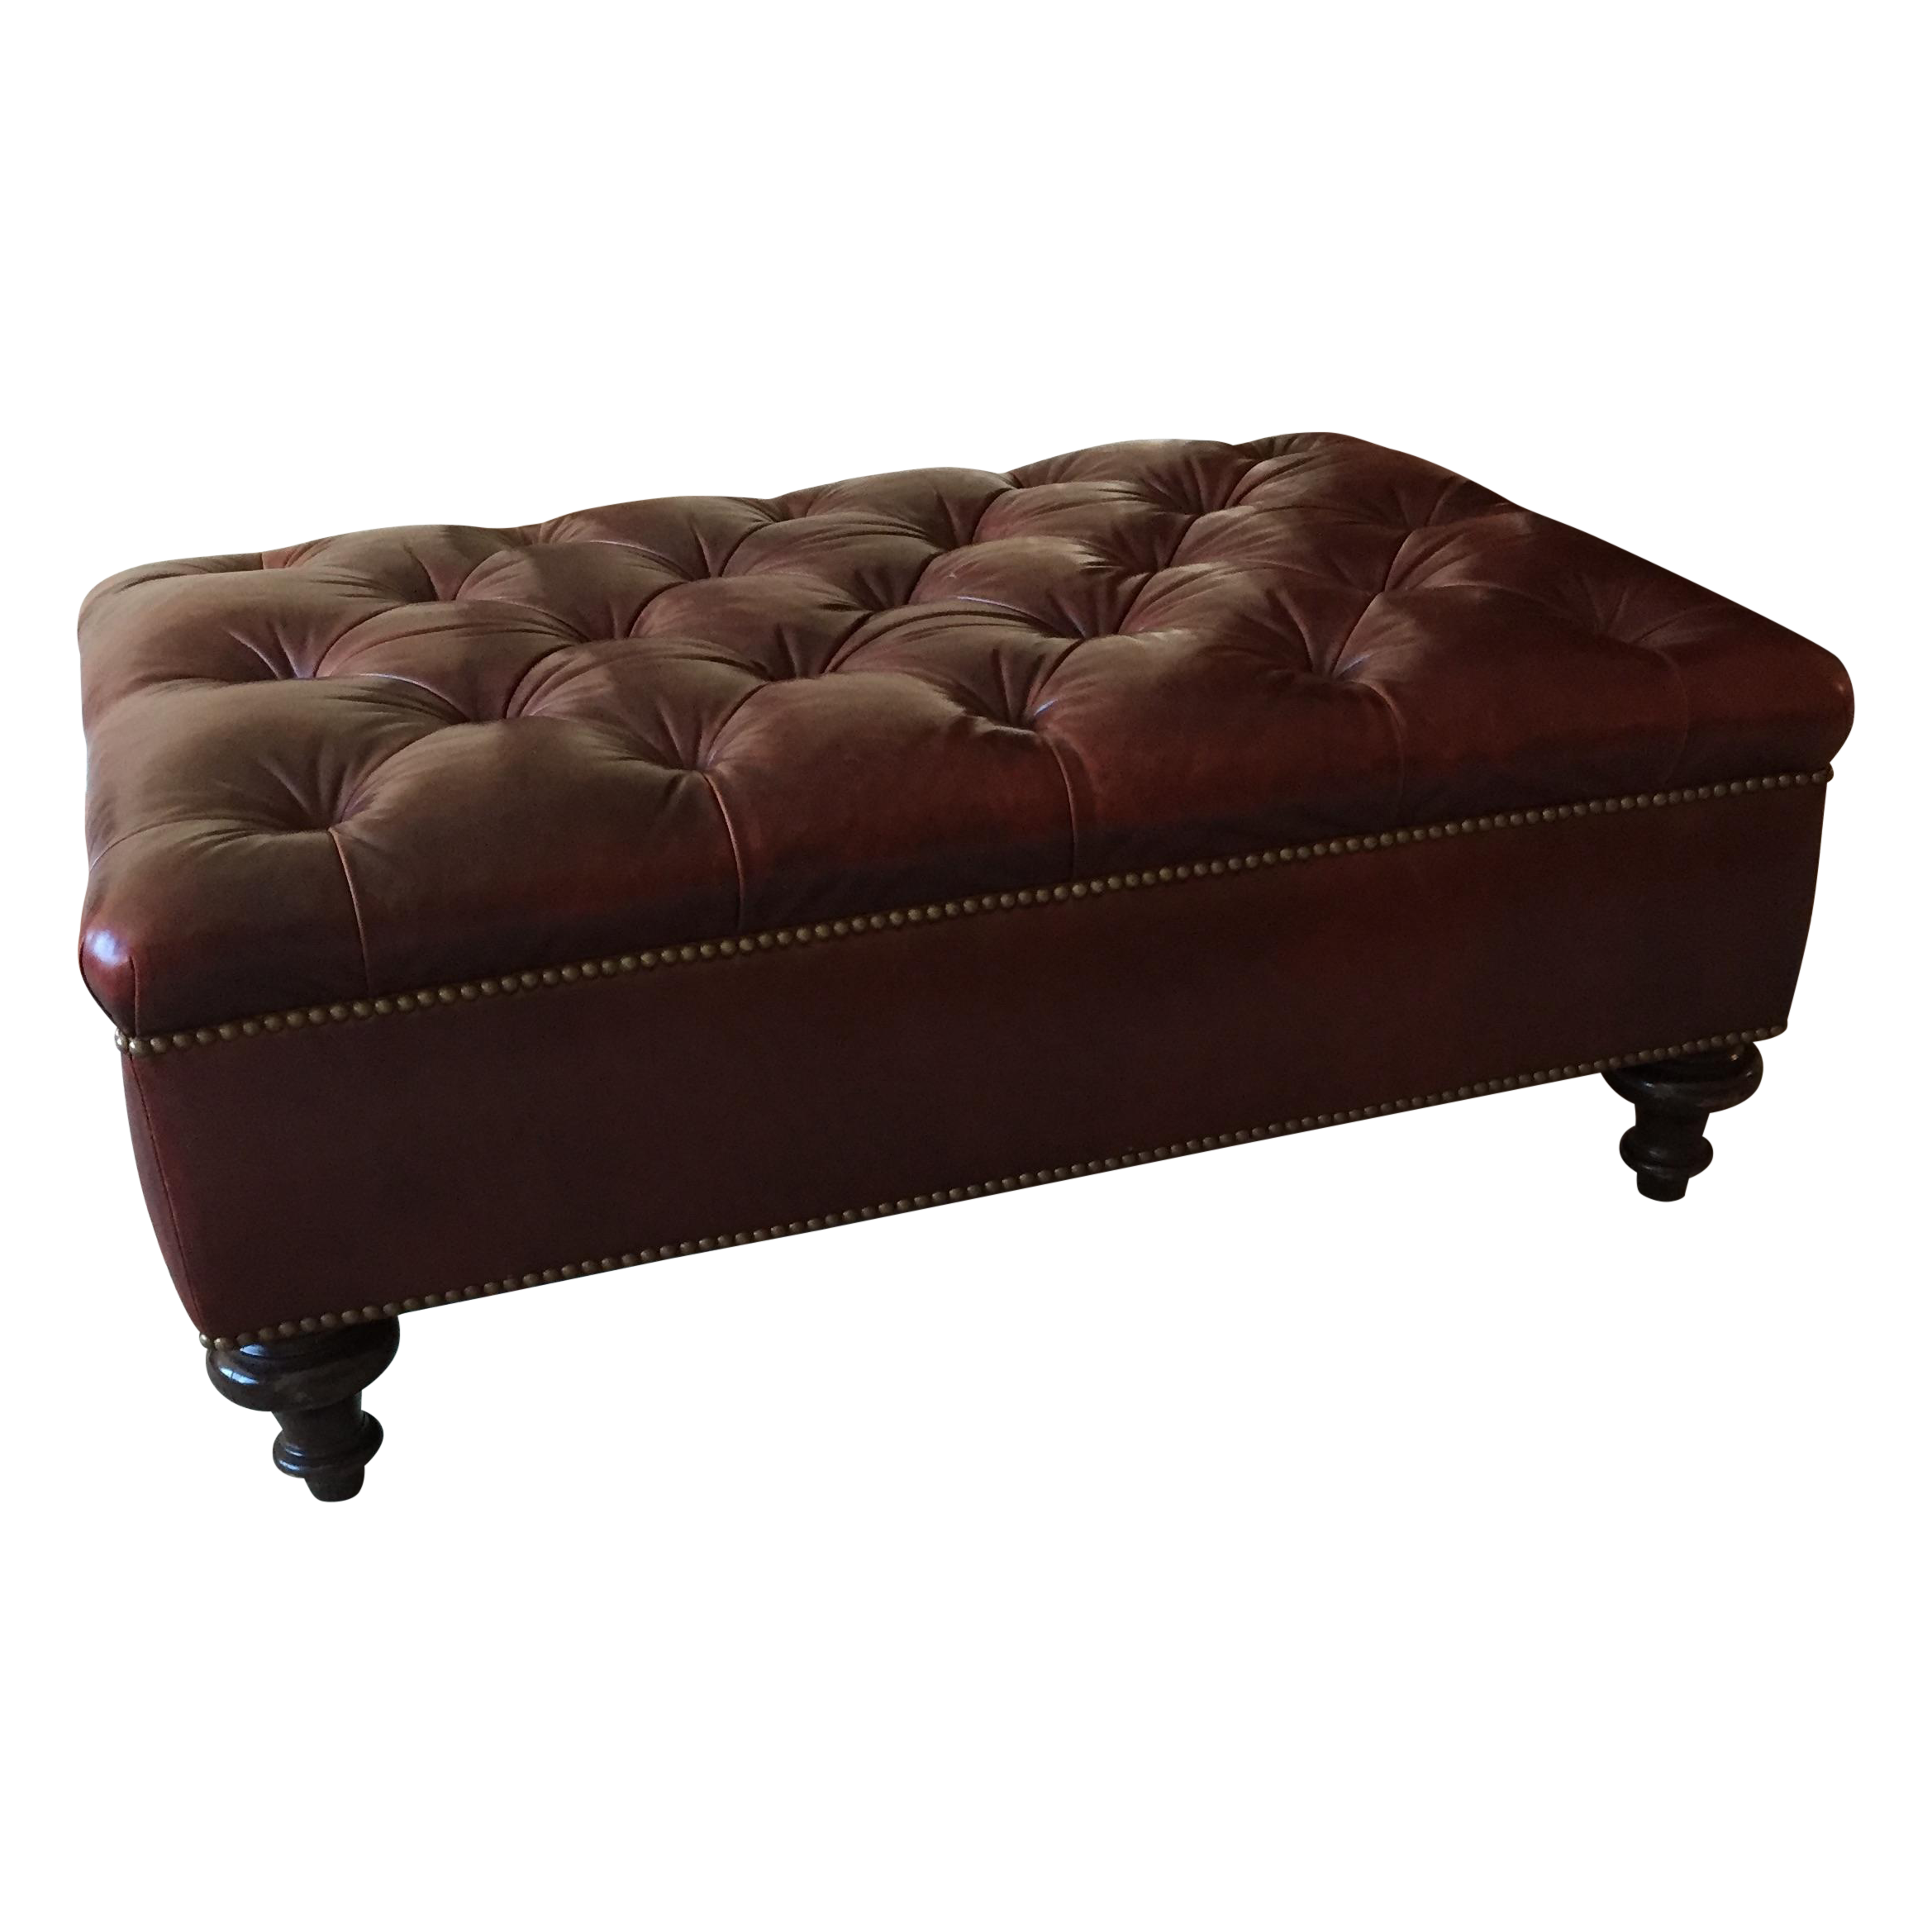 leather ottoman with bunt feet chairish. Black Bedroom Furniture Sets. Home Design Ideas